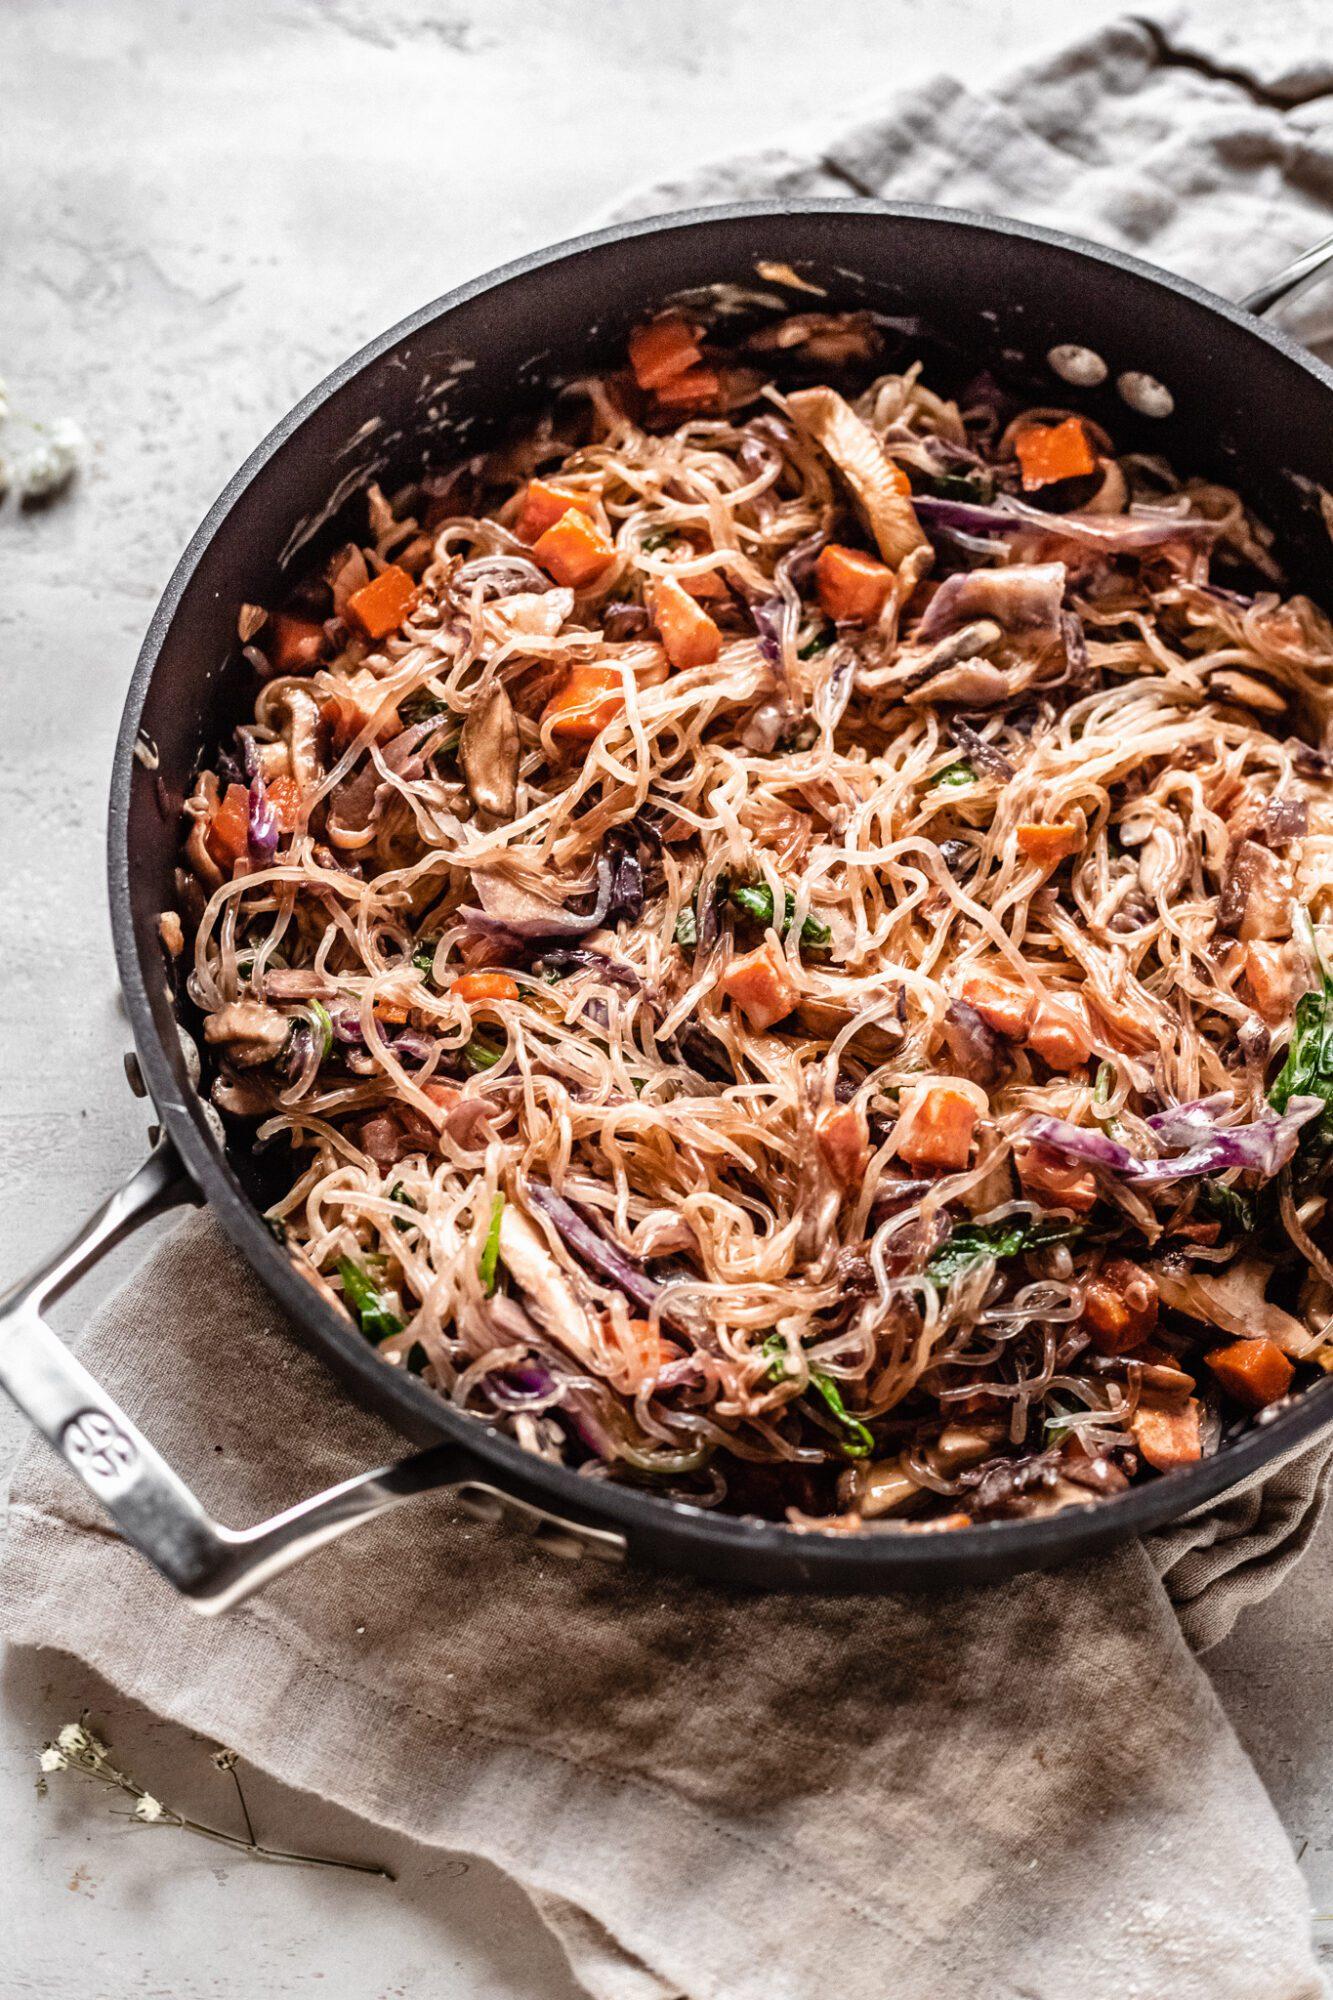 coated lo mein noodles